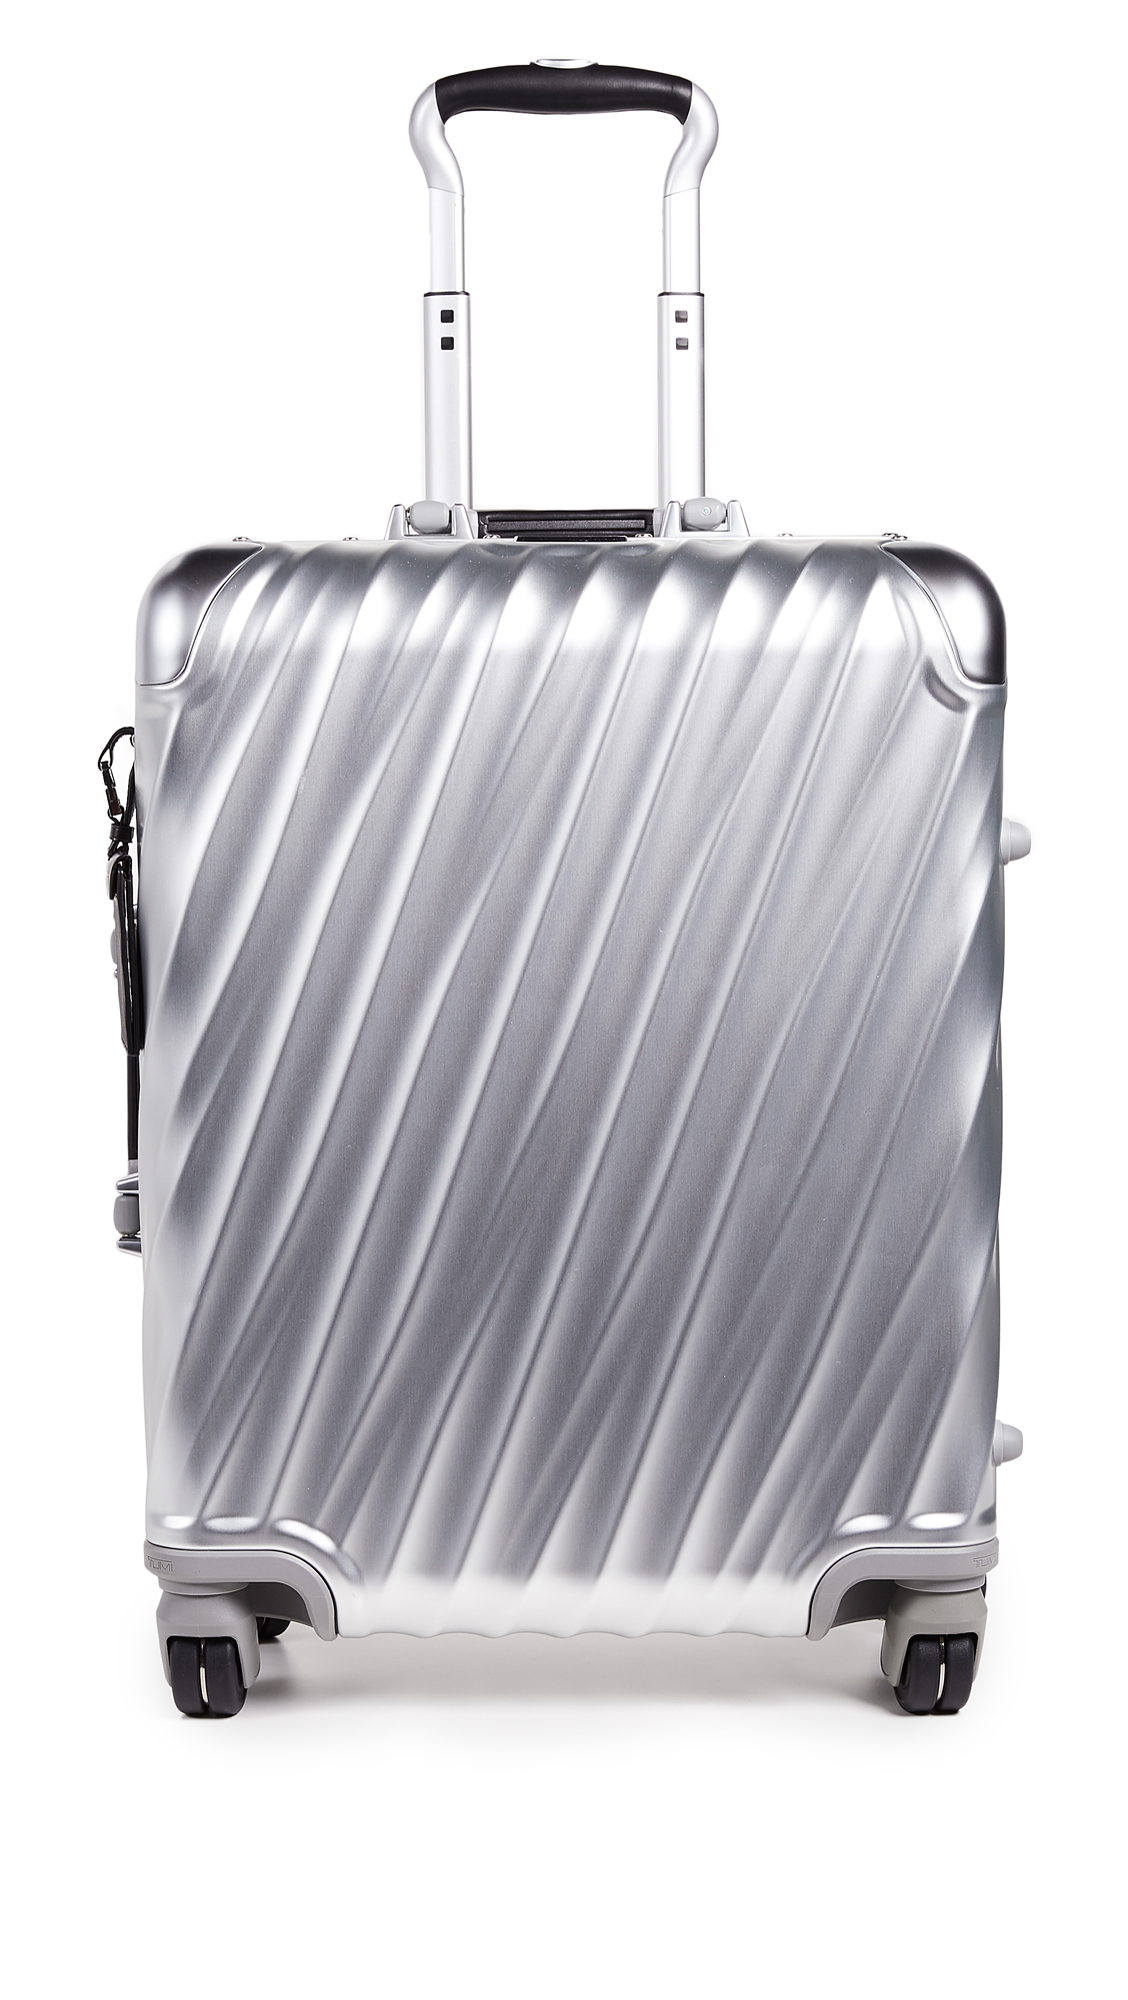 Tumi 19 Degree Aluminum Continental Carry On Suitcase - Silver